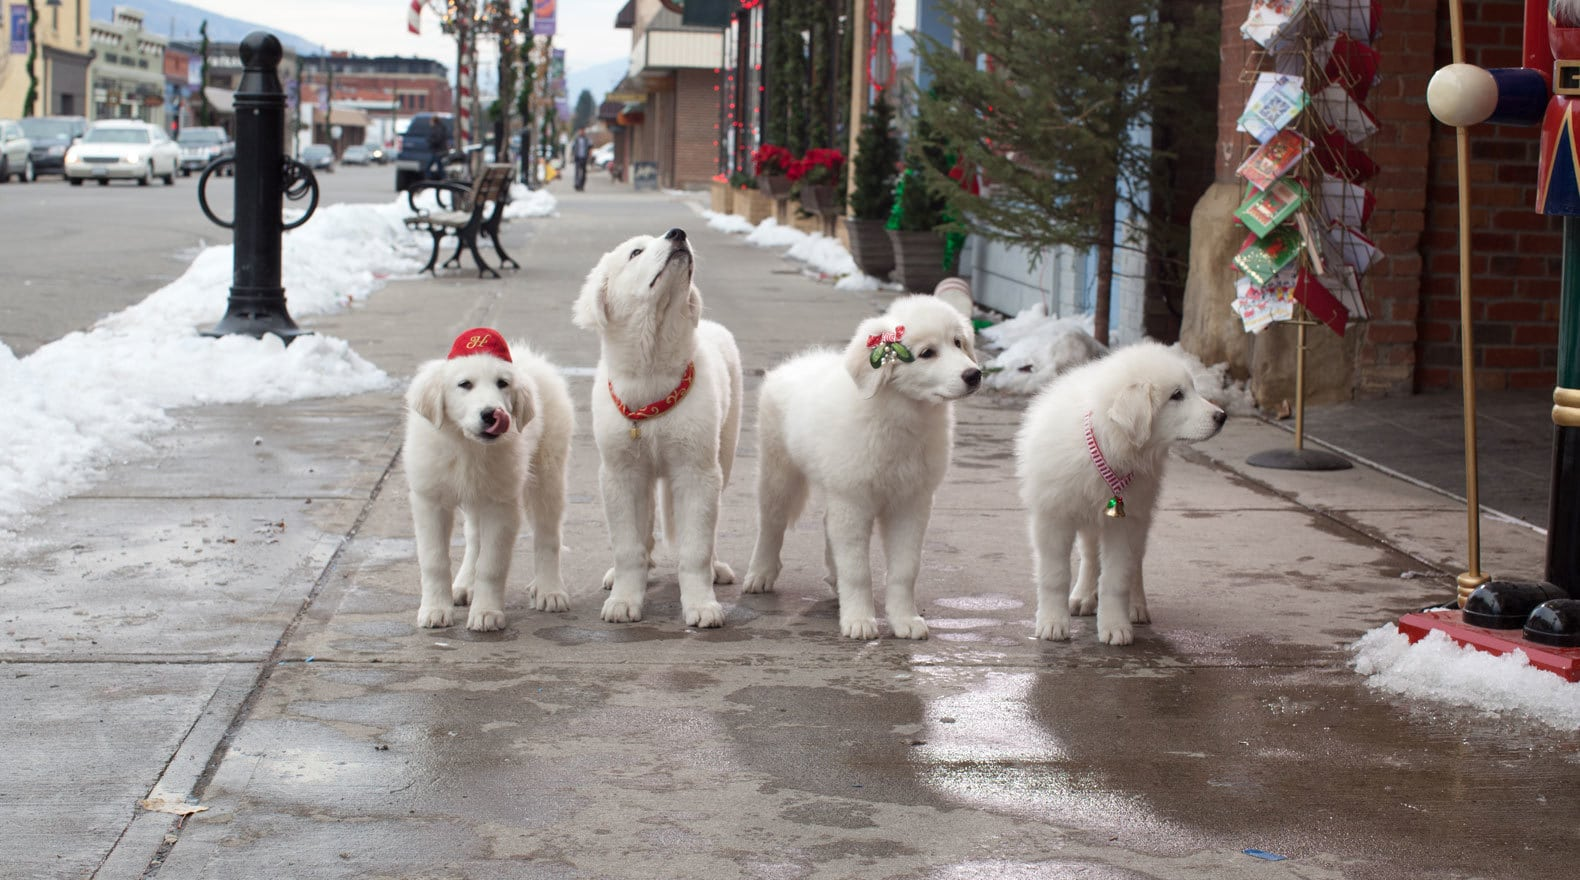 Hope, Jingle, Charity and Noble walking on the street